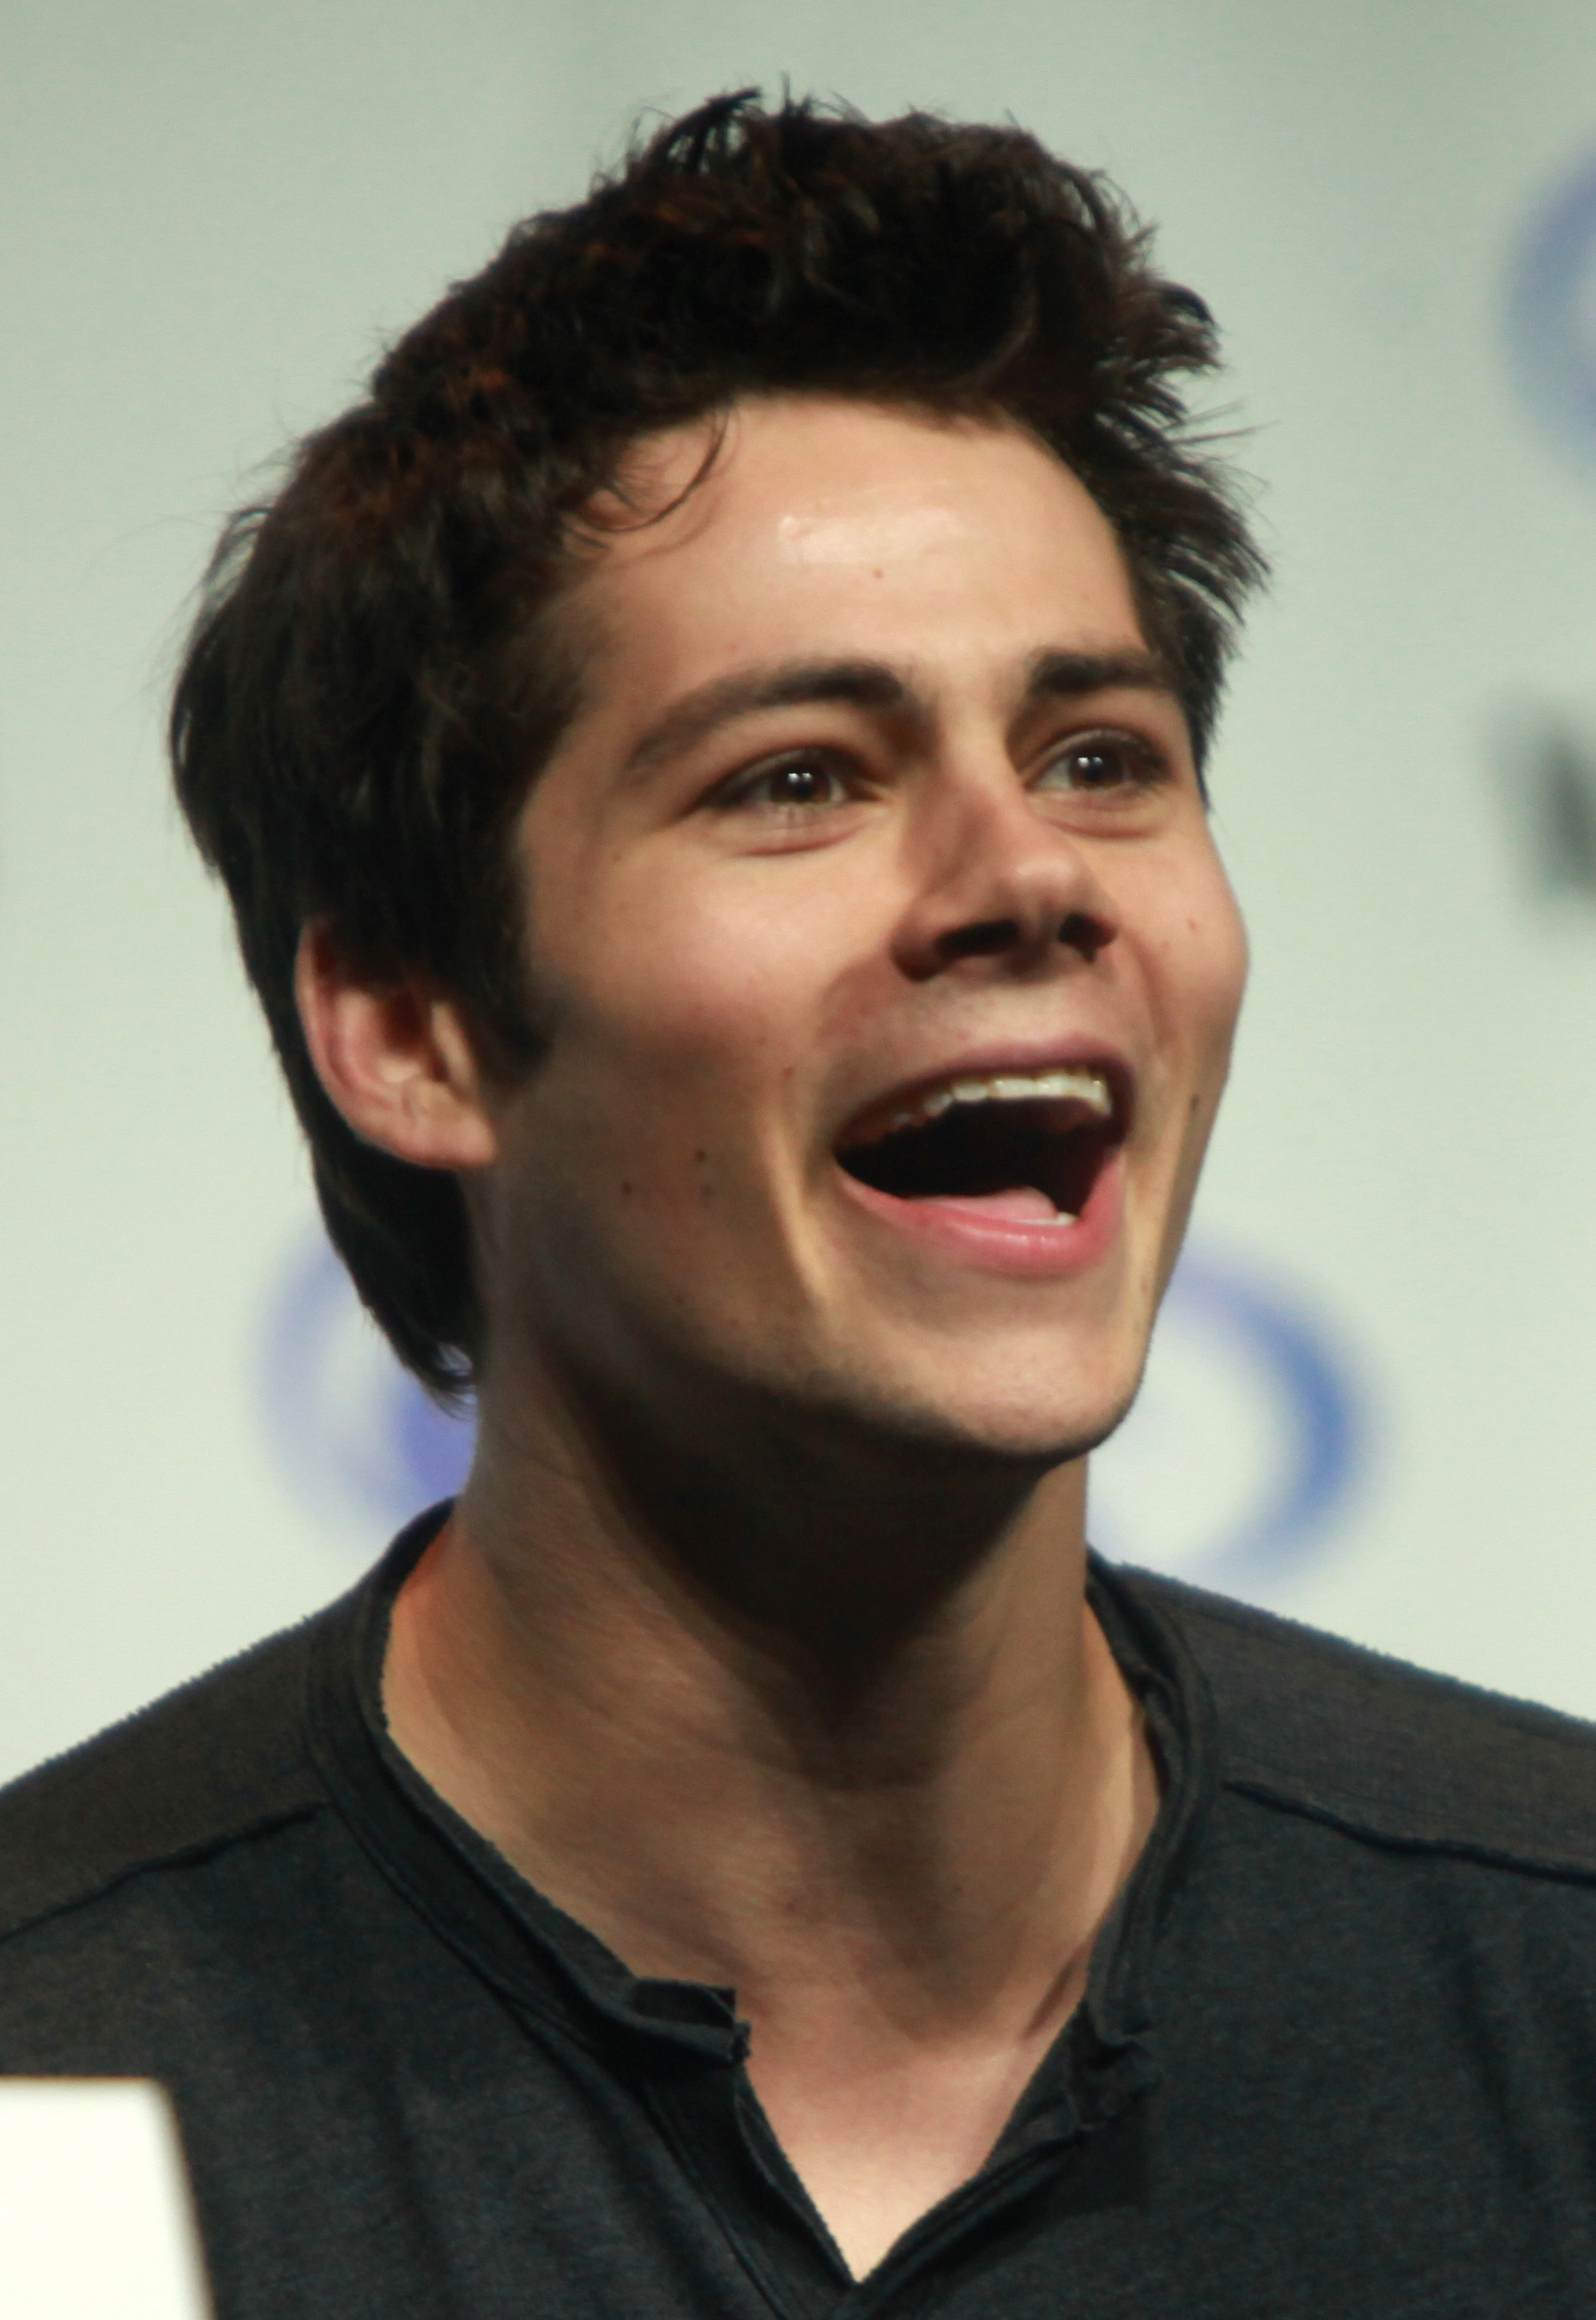 Cute And Funny Wallpapers For Desktop File Dylan O Brien Wc 2014 Jpg Wikimedia Commons